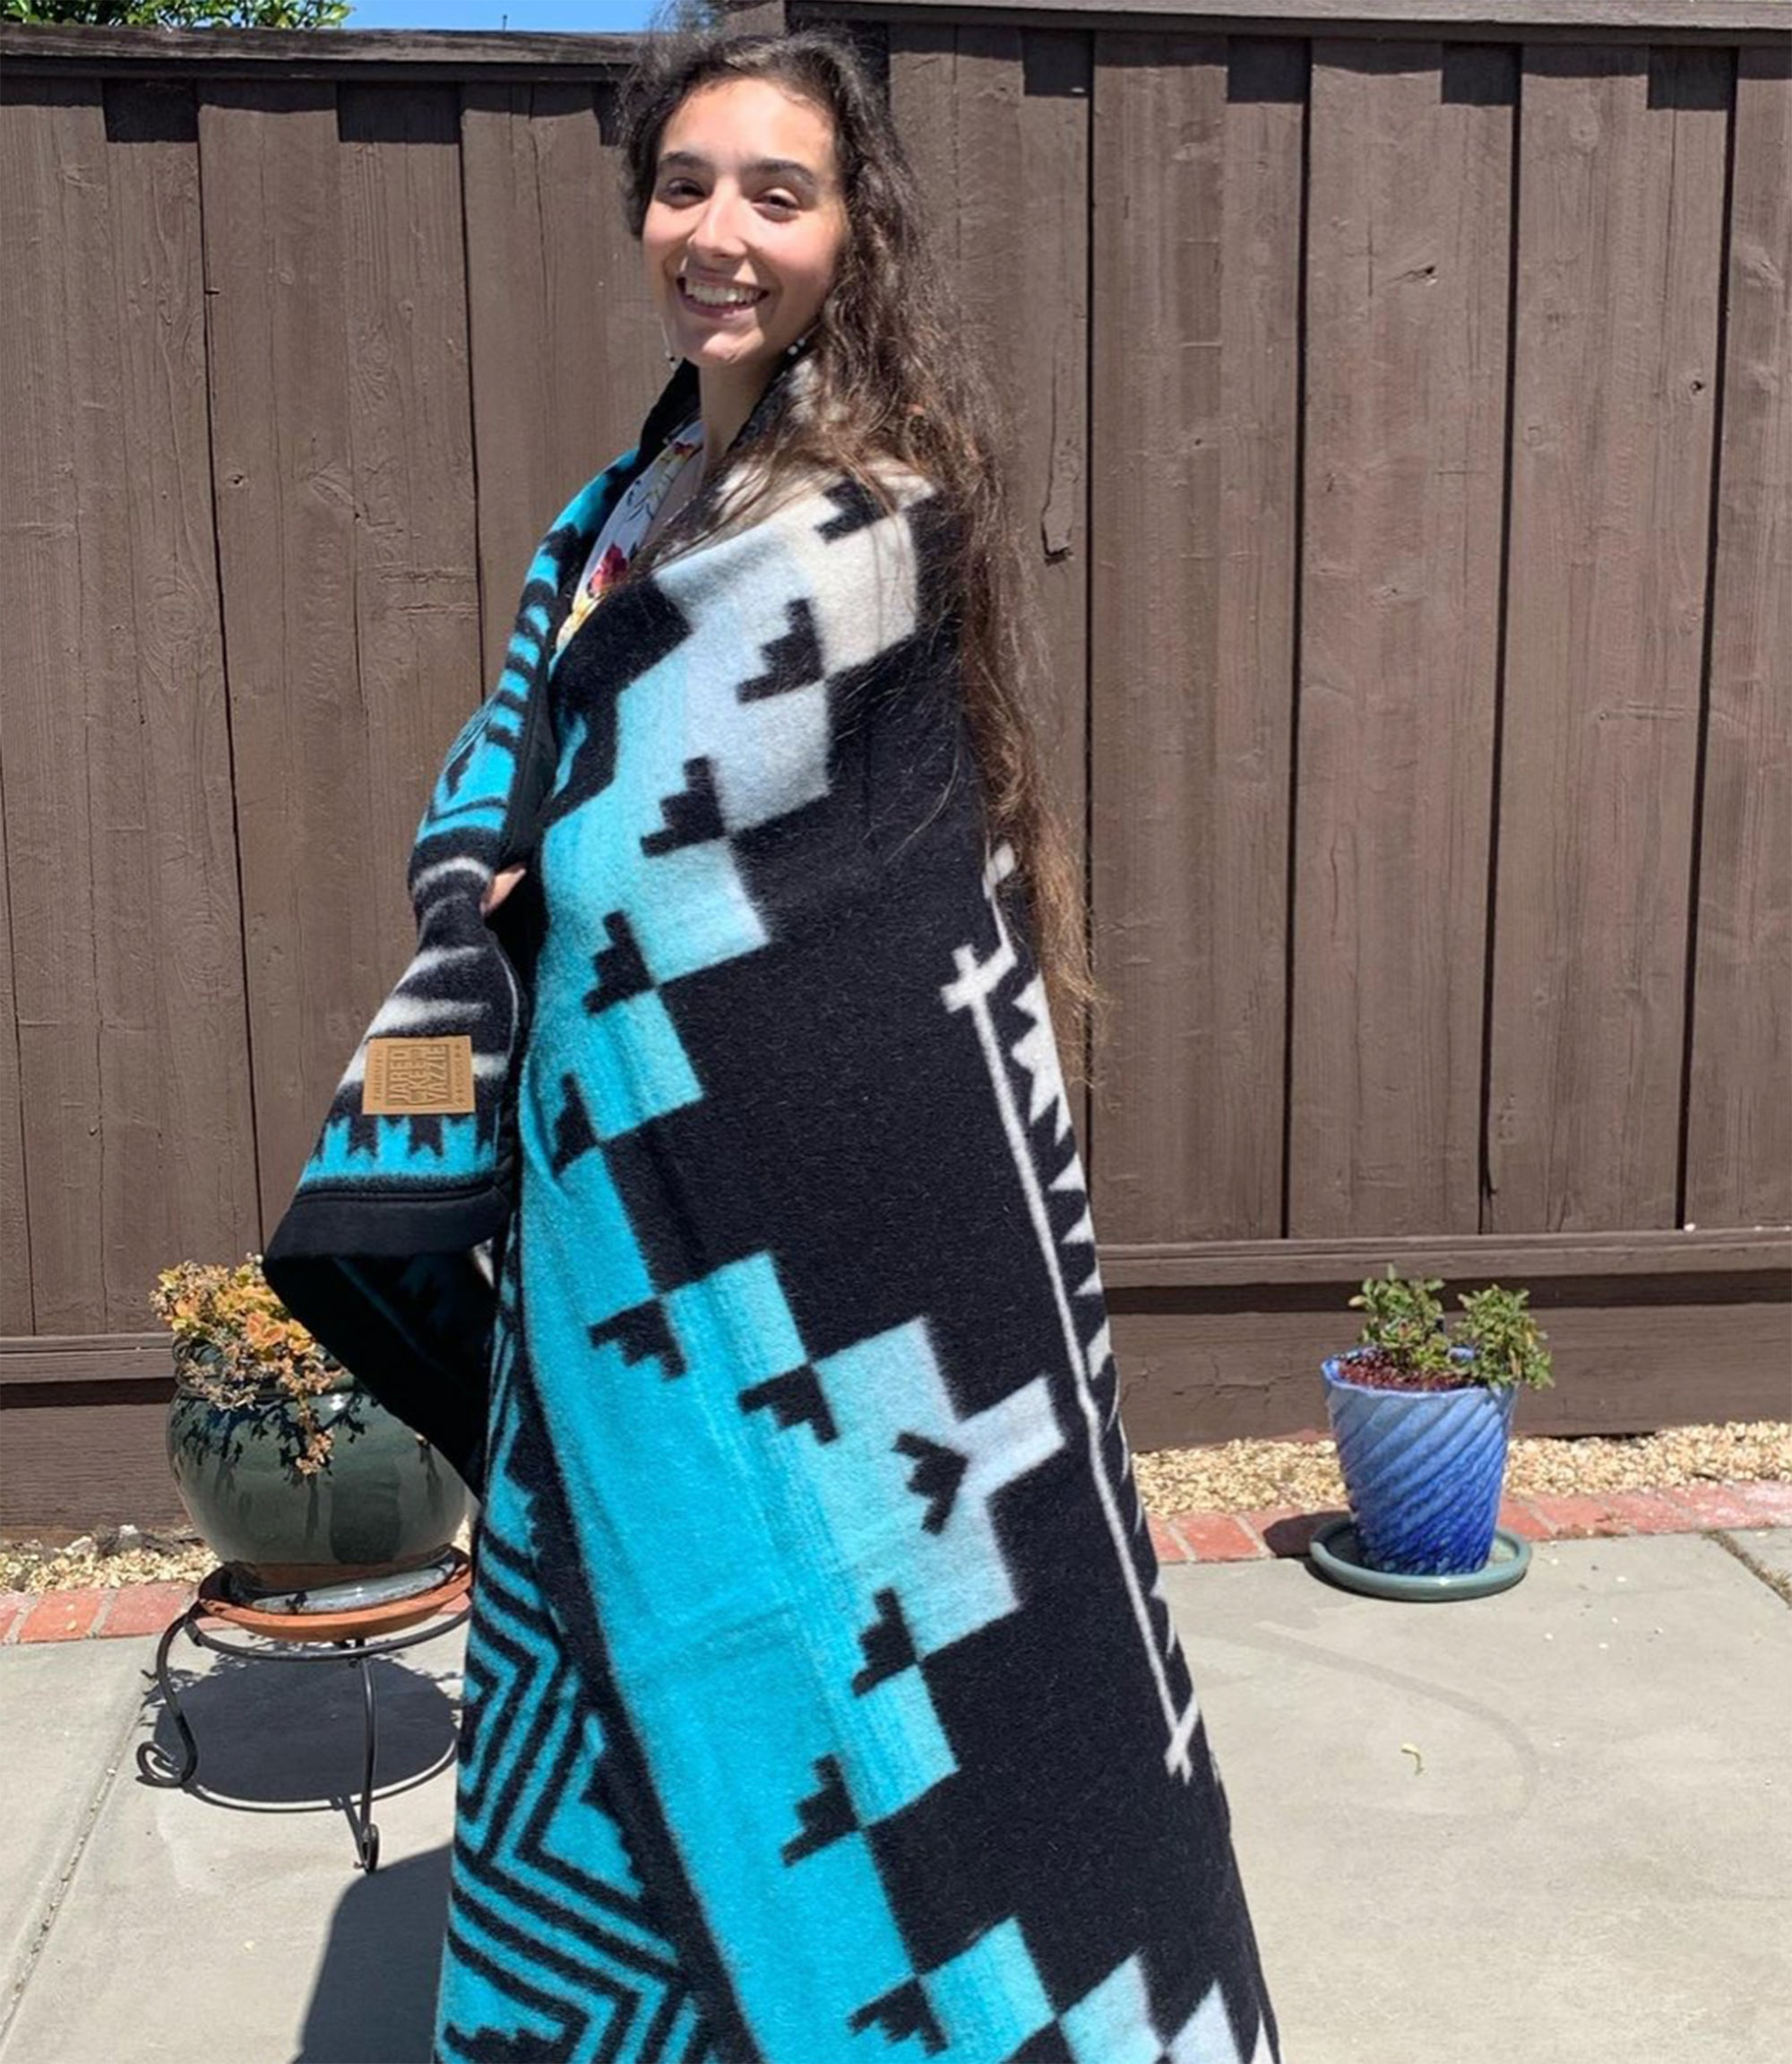 A-woman-with-long-brown-hair-stands-smiling-and-wrapped-in-black-and-turquoise-wool-blanket